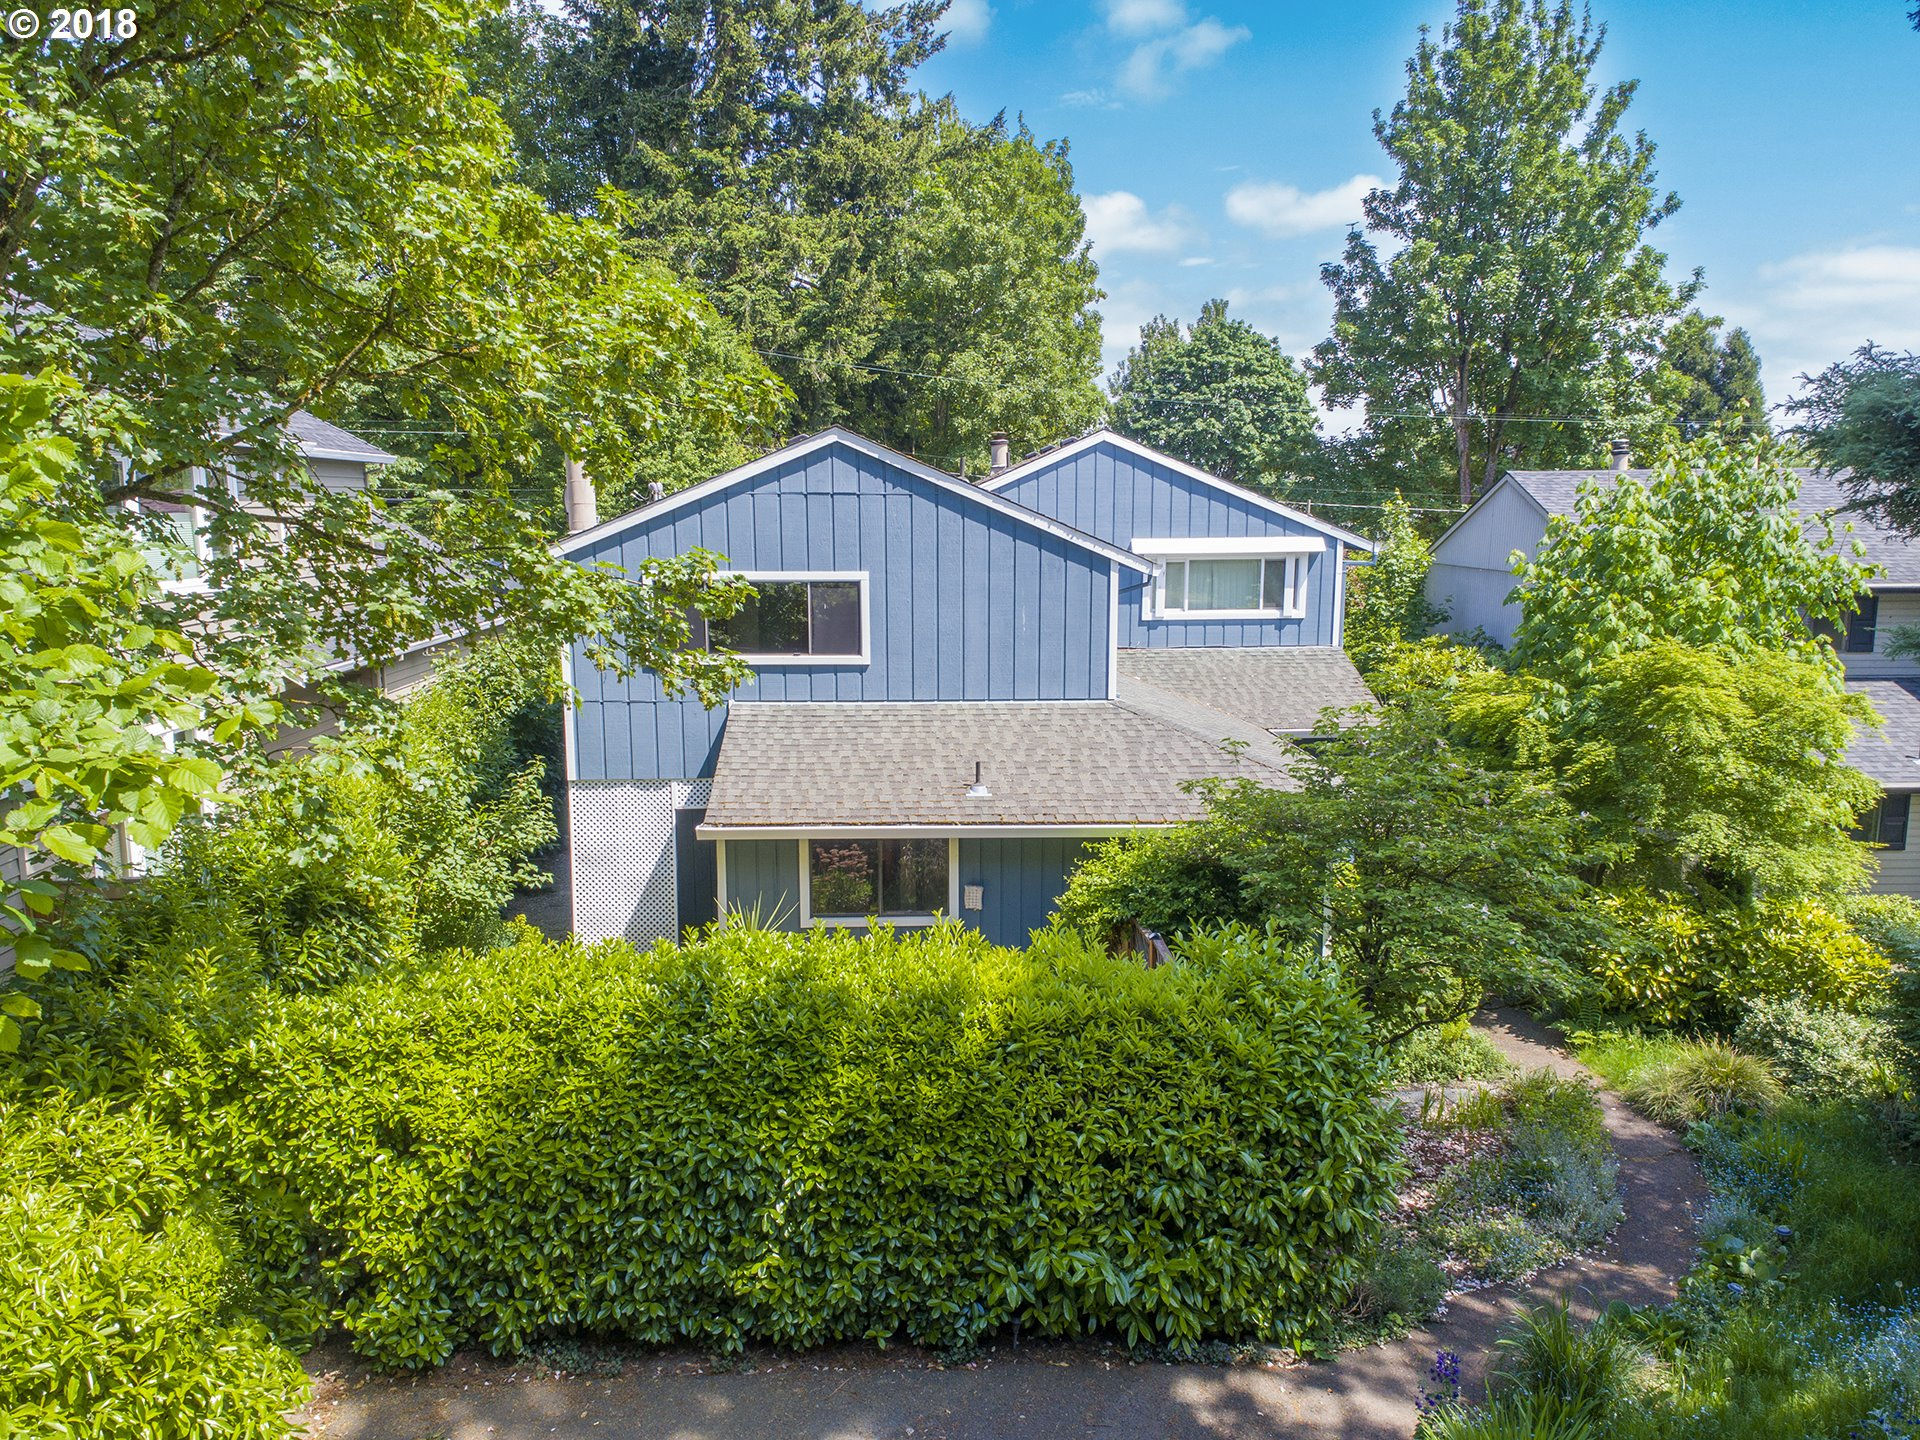 Photo for 657 5TH ST, Lake Oswego, OR 97034 (MLS # 18091487)